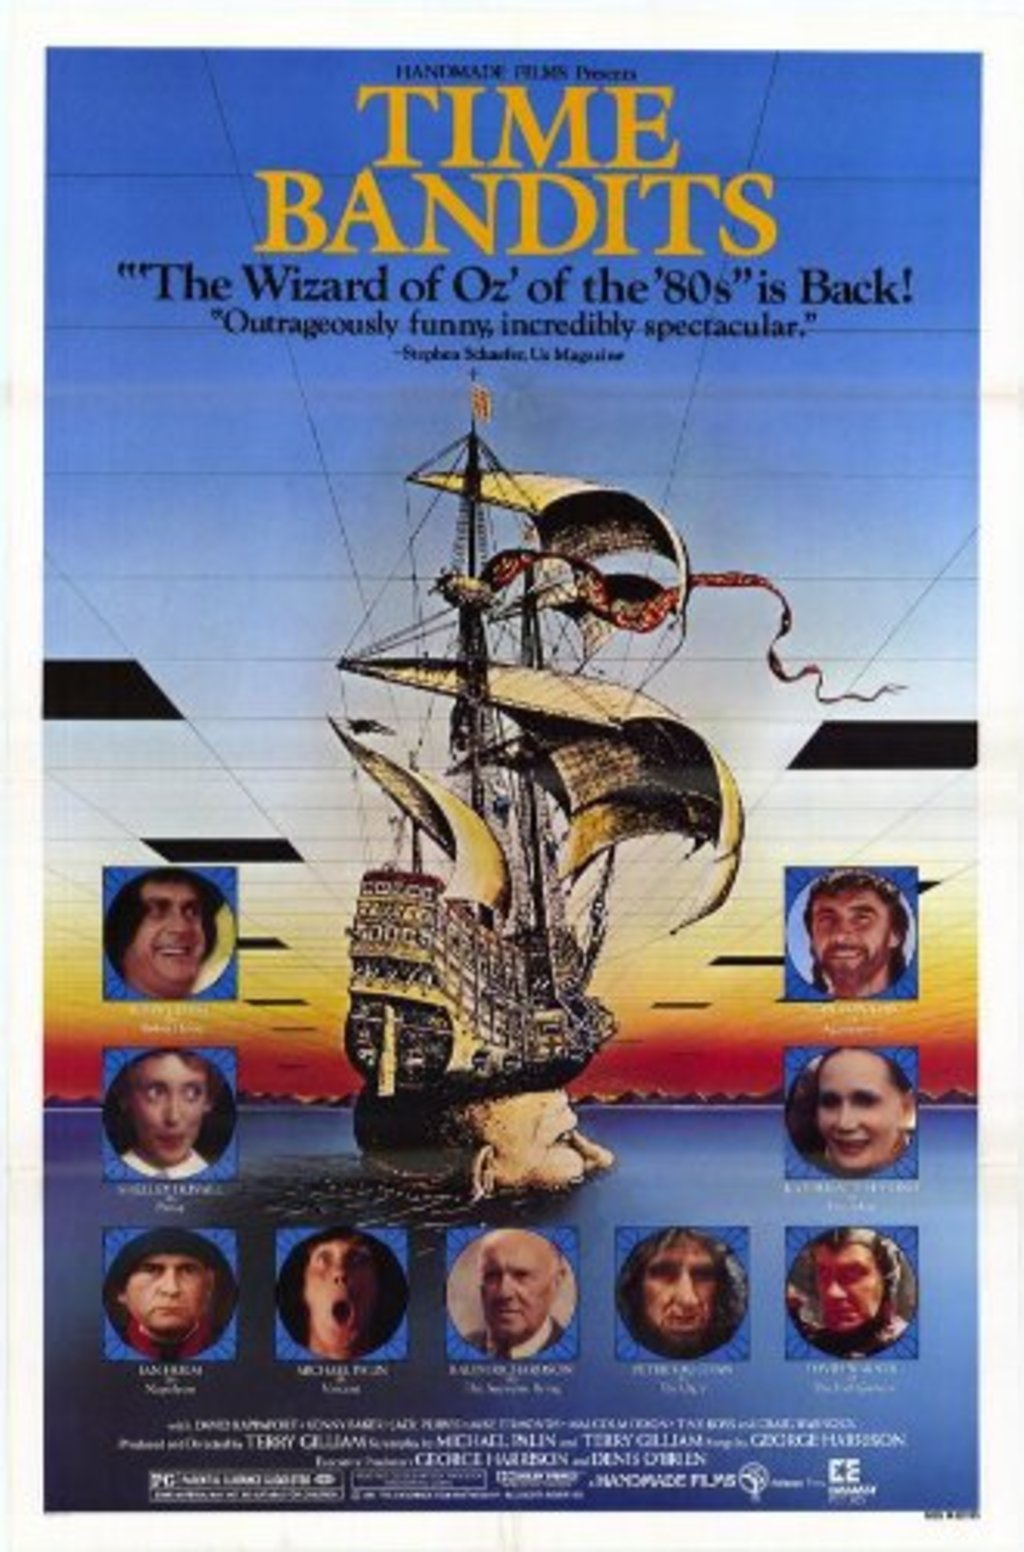 Watch Time Bandits (1981) Full Movie on FMovies.to